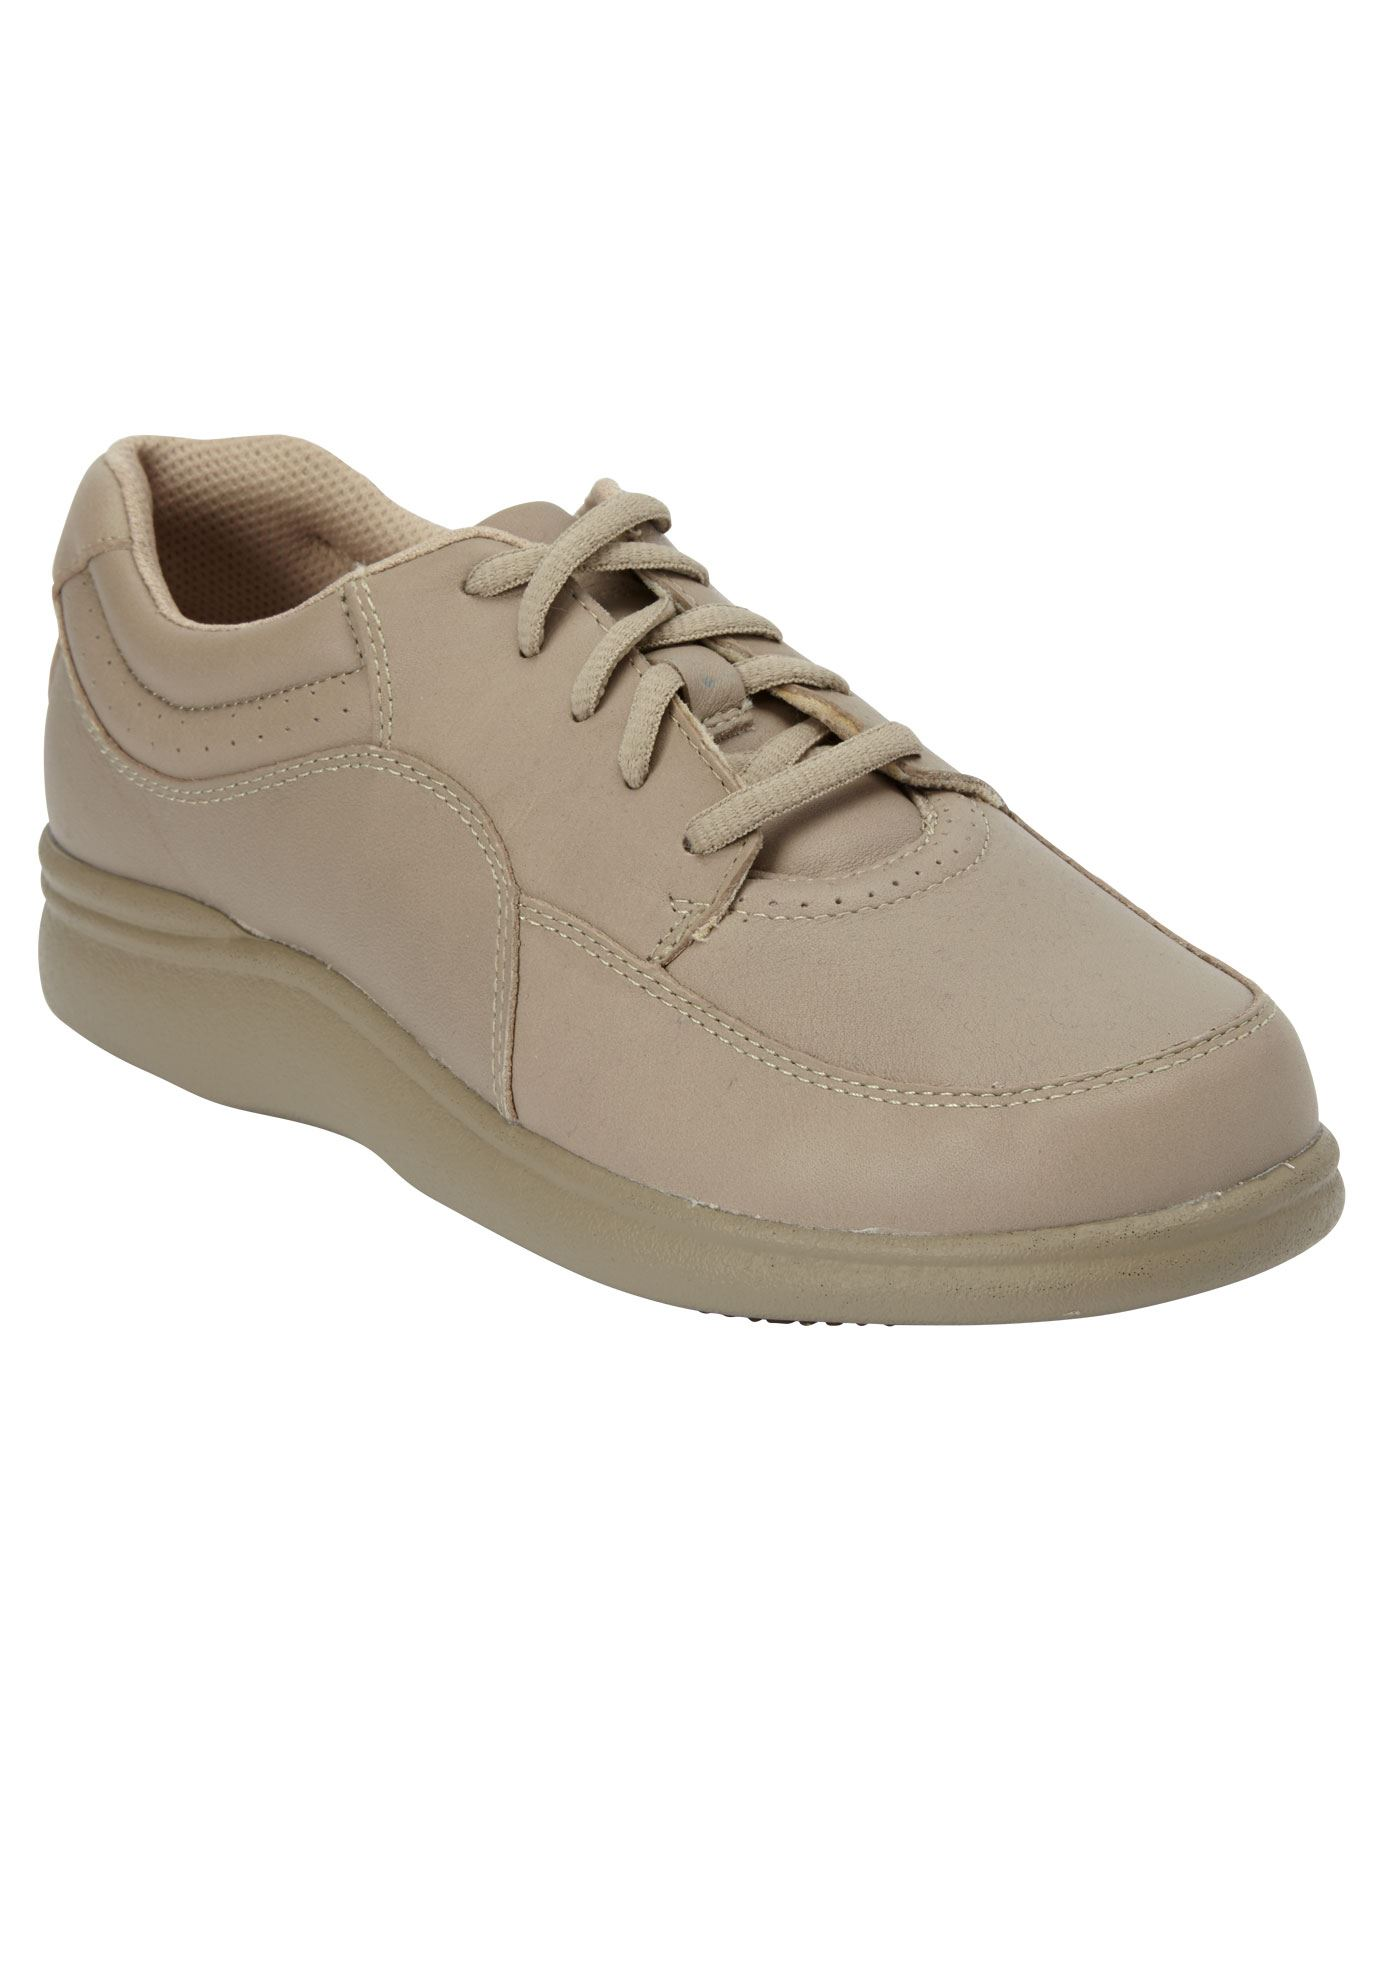 Power Walker Leather Sneakers by Hush Puppies®,